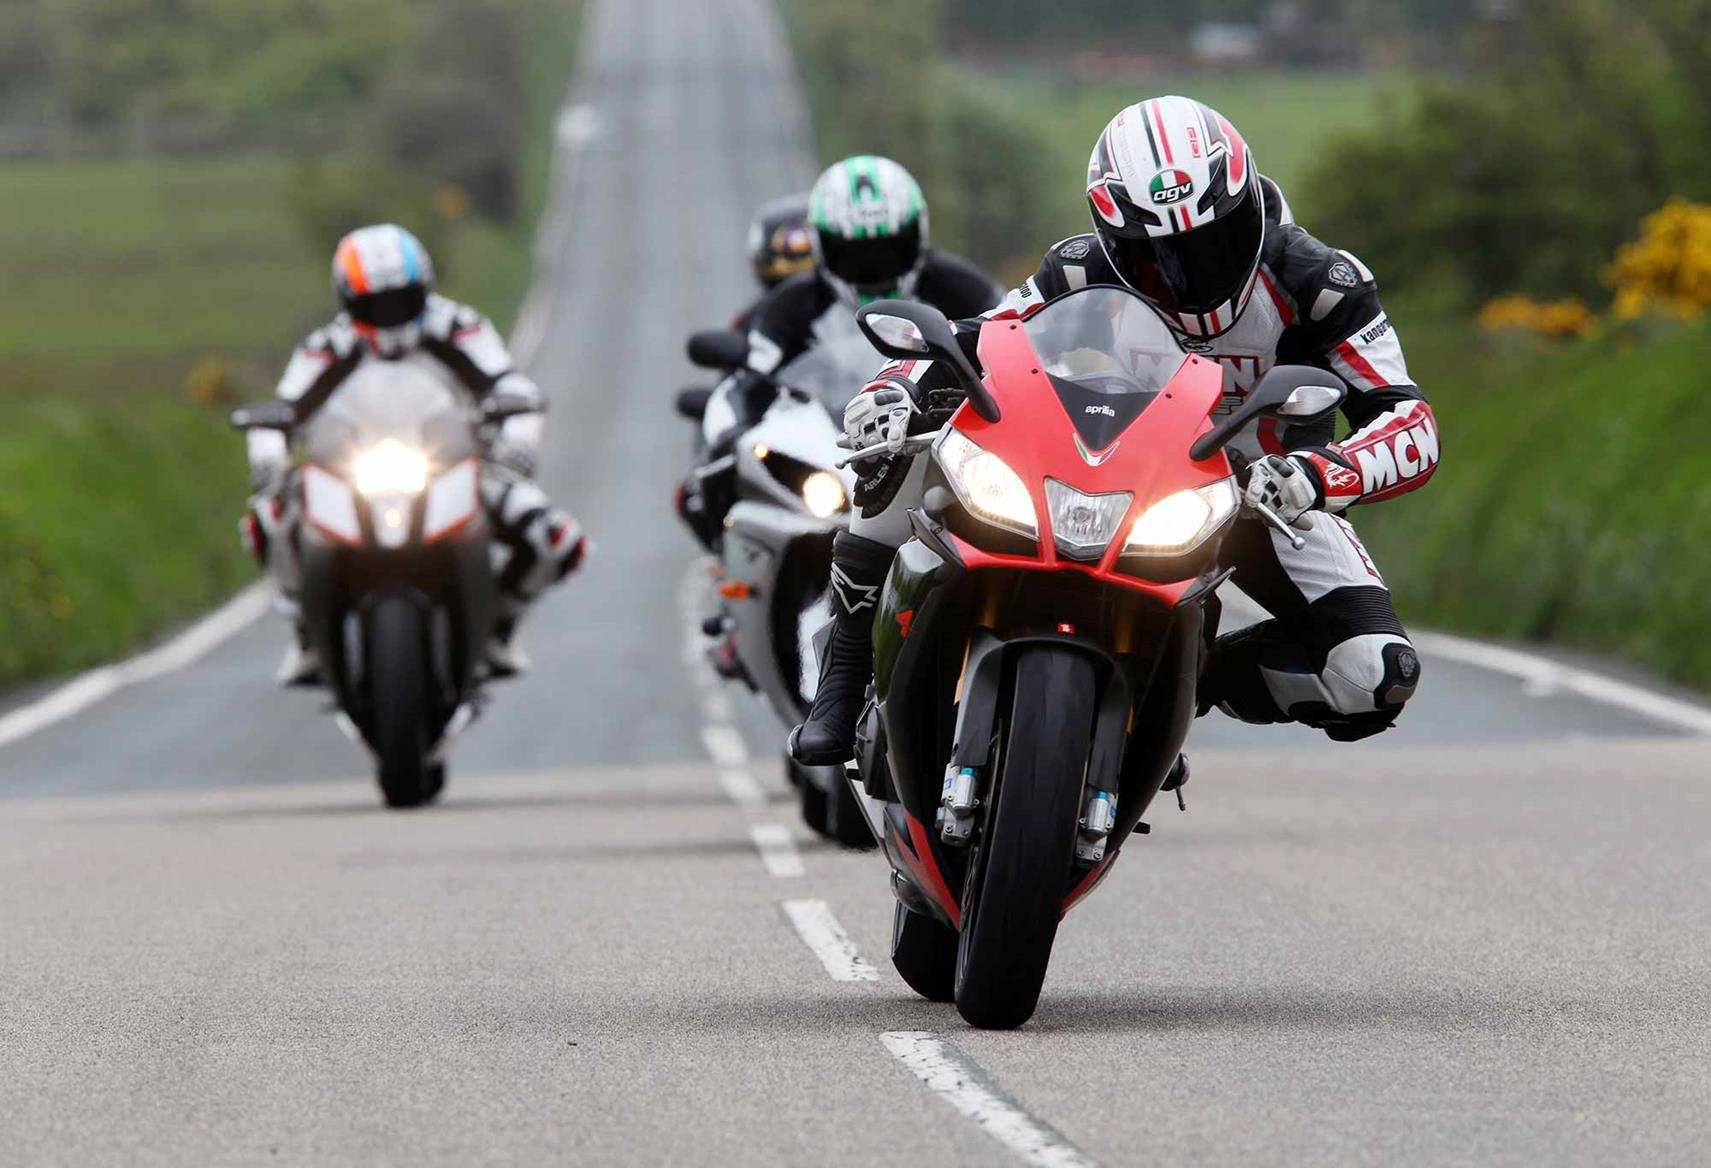 Cornering on the Aprilia RSV4 Factory